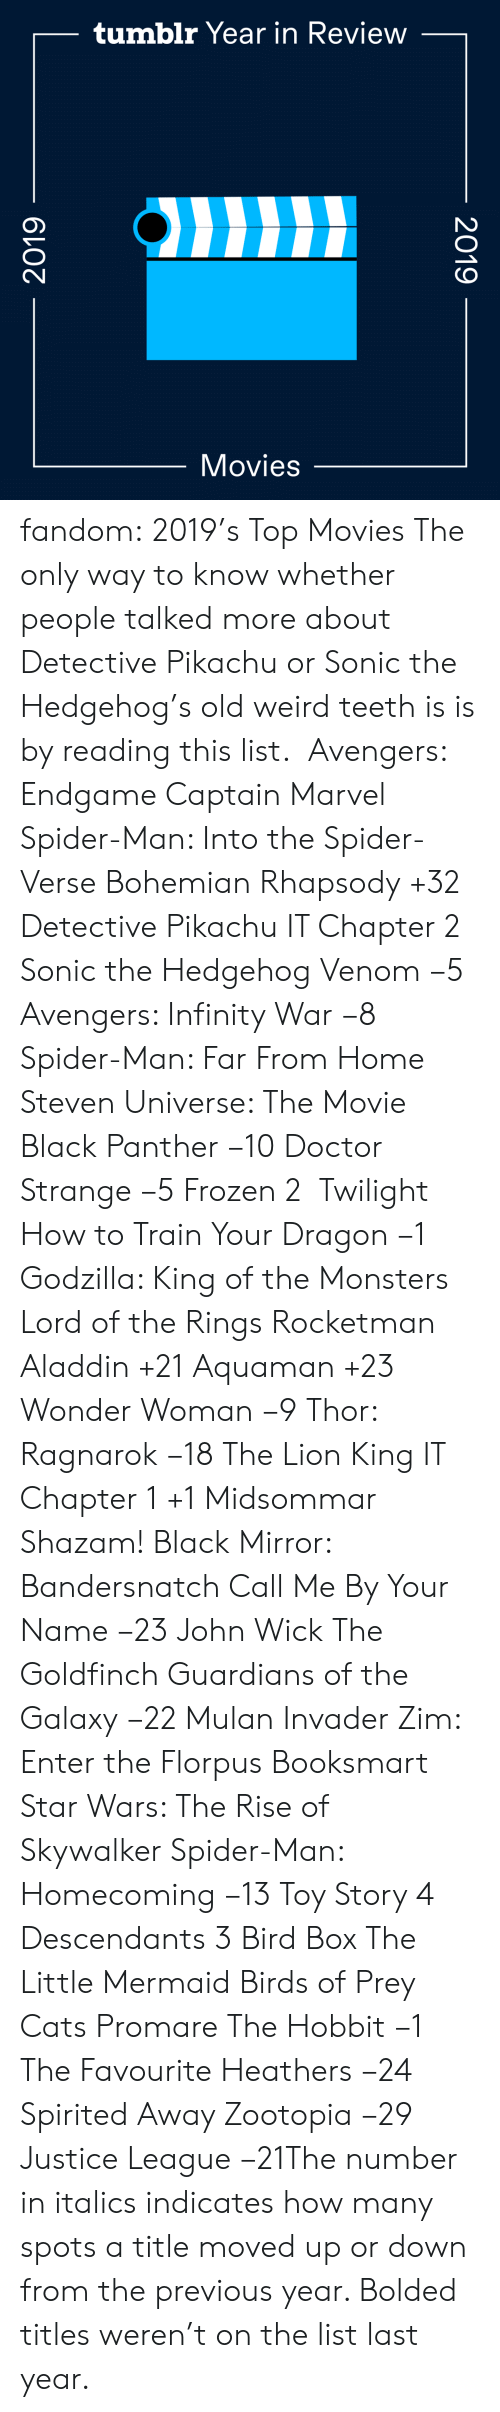 Search: tumblr Year in Review  Movies  2019  2019 fandom:  2019's Top Movies  The only way to know whether people talked more about Detective Pikachu or Sonic the Hedgehog's old weird teeth is is by reading this list.   Avengers: Endgame  Captain Marvel  Spider-Man: Into the Spider-Verse  Bohemian Rhapsody +32  Detective Pikachu  IT Chapter 2  Sonic the Hedgehog  Venom −5  Avengers: Infinity War −8  Spider-Man: Far From Home  Steven Universe: The Movie  Black Panther −10  Doctor Strange −5  Frozen 2   Twilight  How to Train Your Dragon −1  Godzilla: King of the Monsters  Lord of the Rings  Rocketman  Aladdin +21  Aquaman +23  Wonder Woman −9  Thor: Ragnarok −18  The Lion King  IT Chapter 1 +1  Midsommar  Shazam!  Black Mirror: Bandersnatch  Call Me By Your Name −23  John Wick  The Goldfinch  Guardians of the Galaxy −22  Mulan  Invader Zim: Enter the Florpus  Booksmart  Star Wars: The Rise of Skywalker  Spider-Man: Homecoming −13  Toy Story 4  Descendants 3  Bird Box  The Little Mermaid  Birds of Prey  Cats  Promare  The Hobbit −1  The Favourite  Heathers −24  Spirited Away  Zootopia −29 Justice League −21The number in italics indicates how many spots a title moved up or down from the previous year. Bolded titles weren't on the list last year.